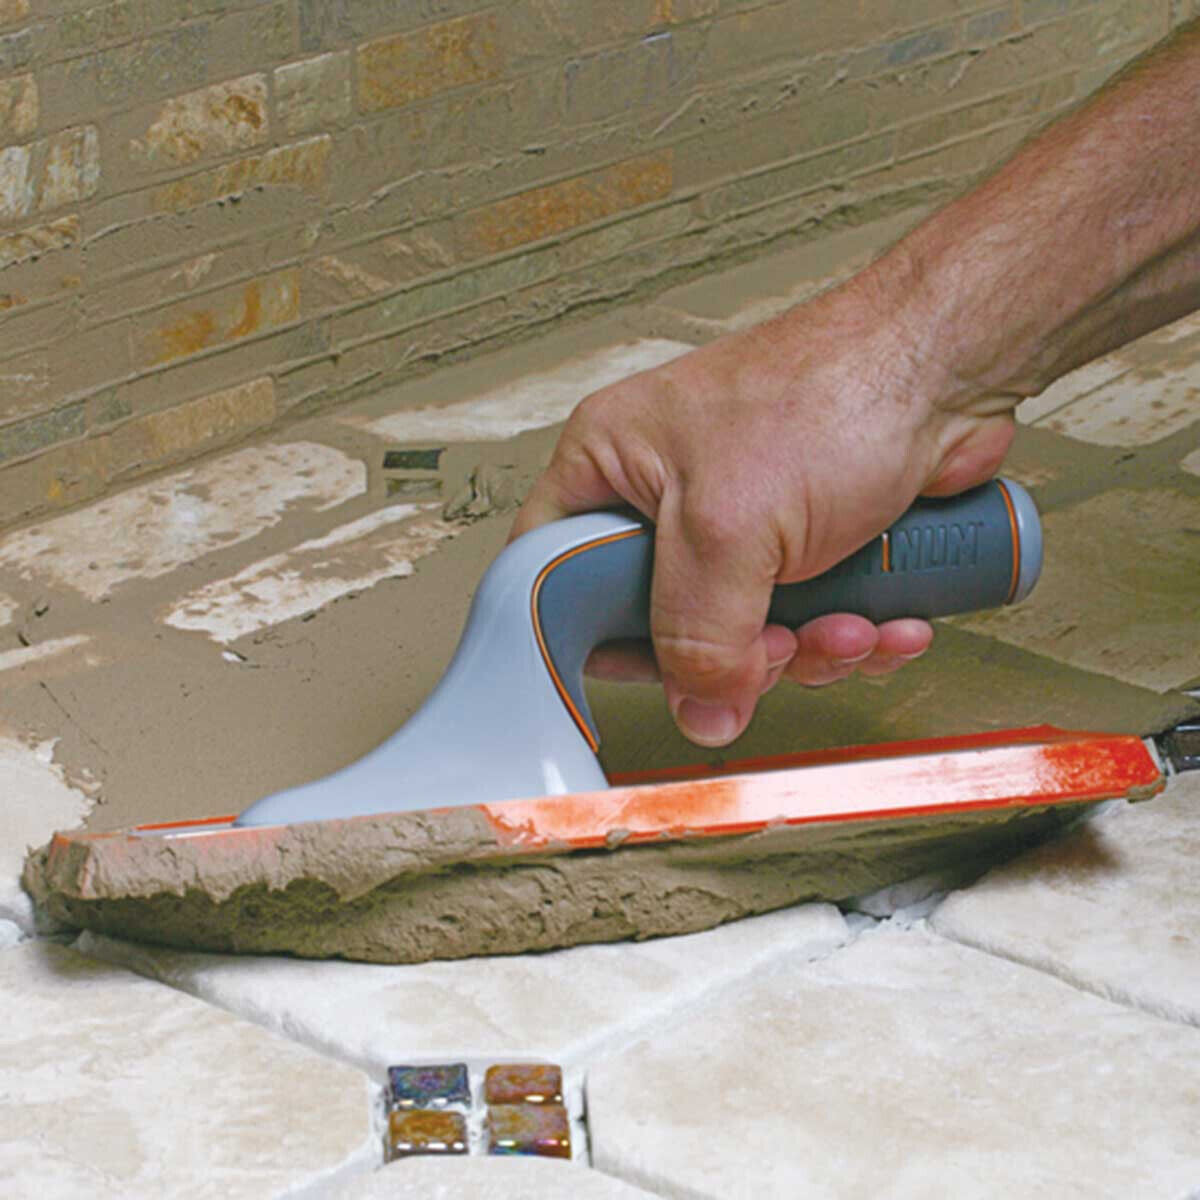 SuperiorBilt Platinum Grout Float In Use